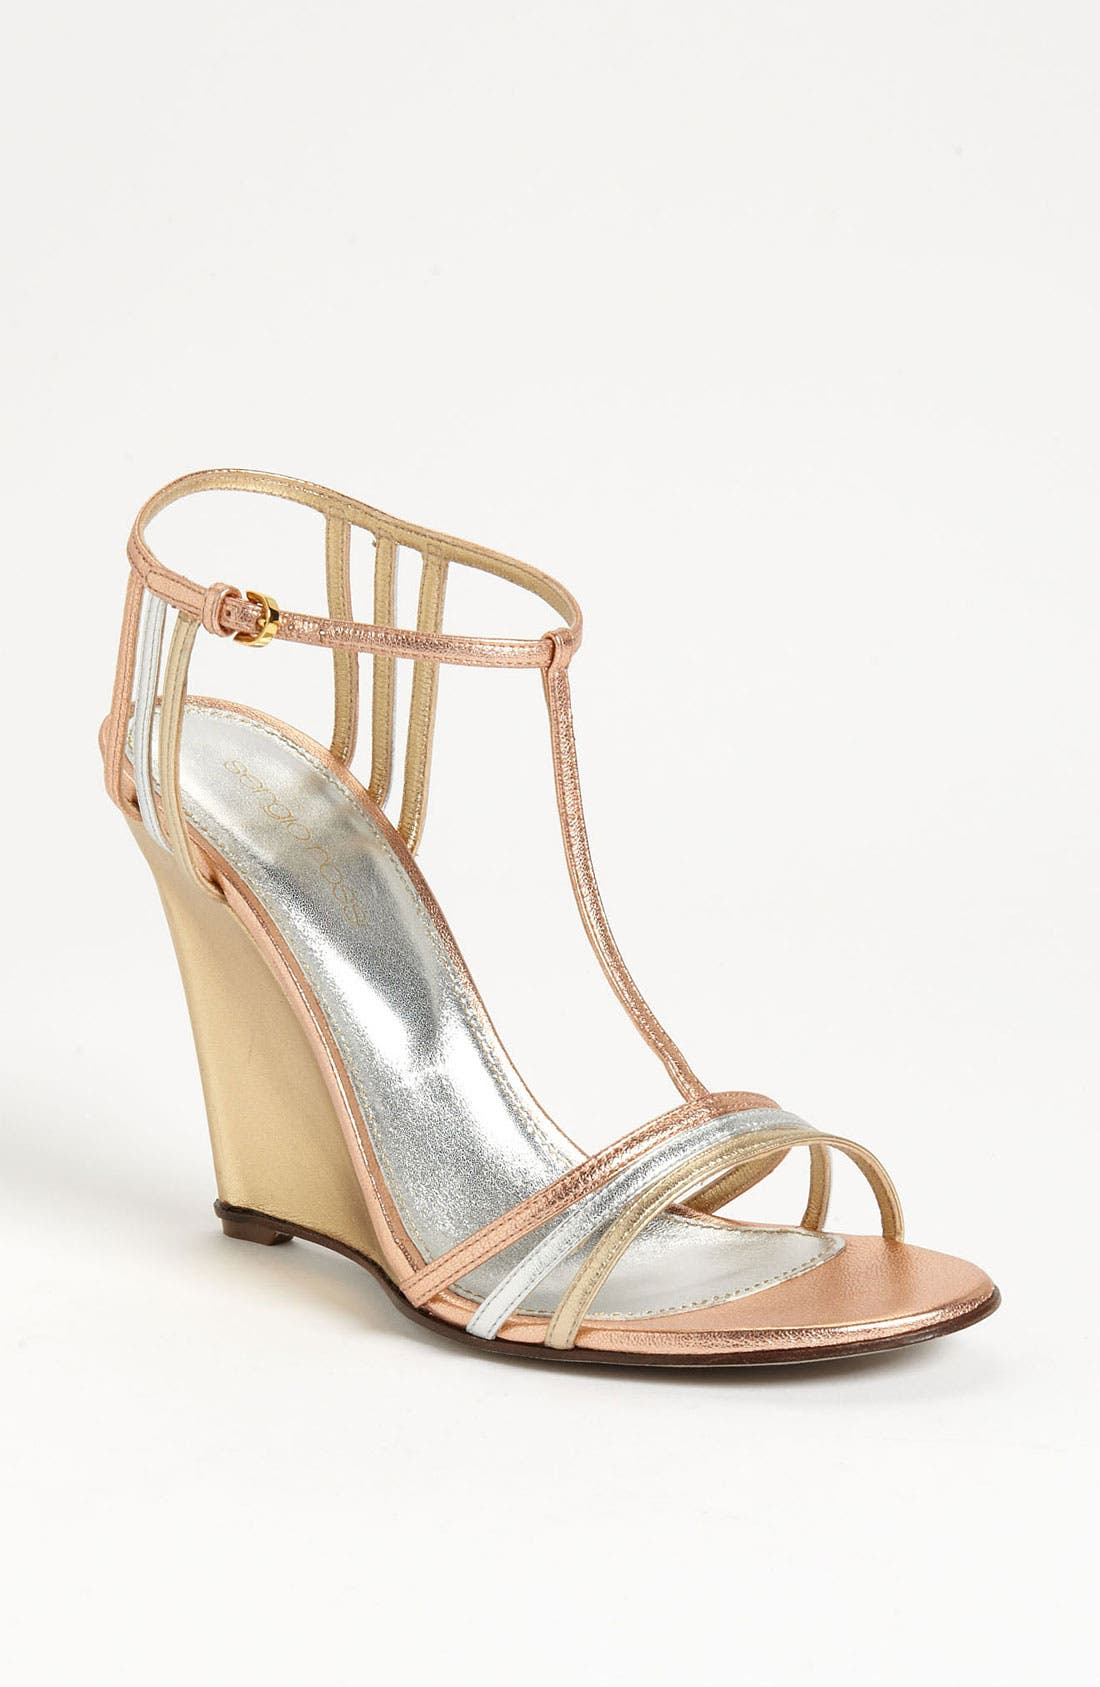 Main Image - Sergio Rossi 'Mirage' Wedge Sandal